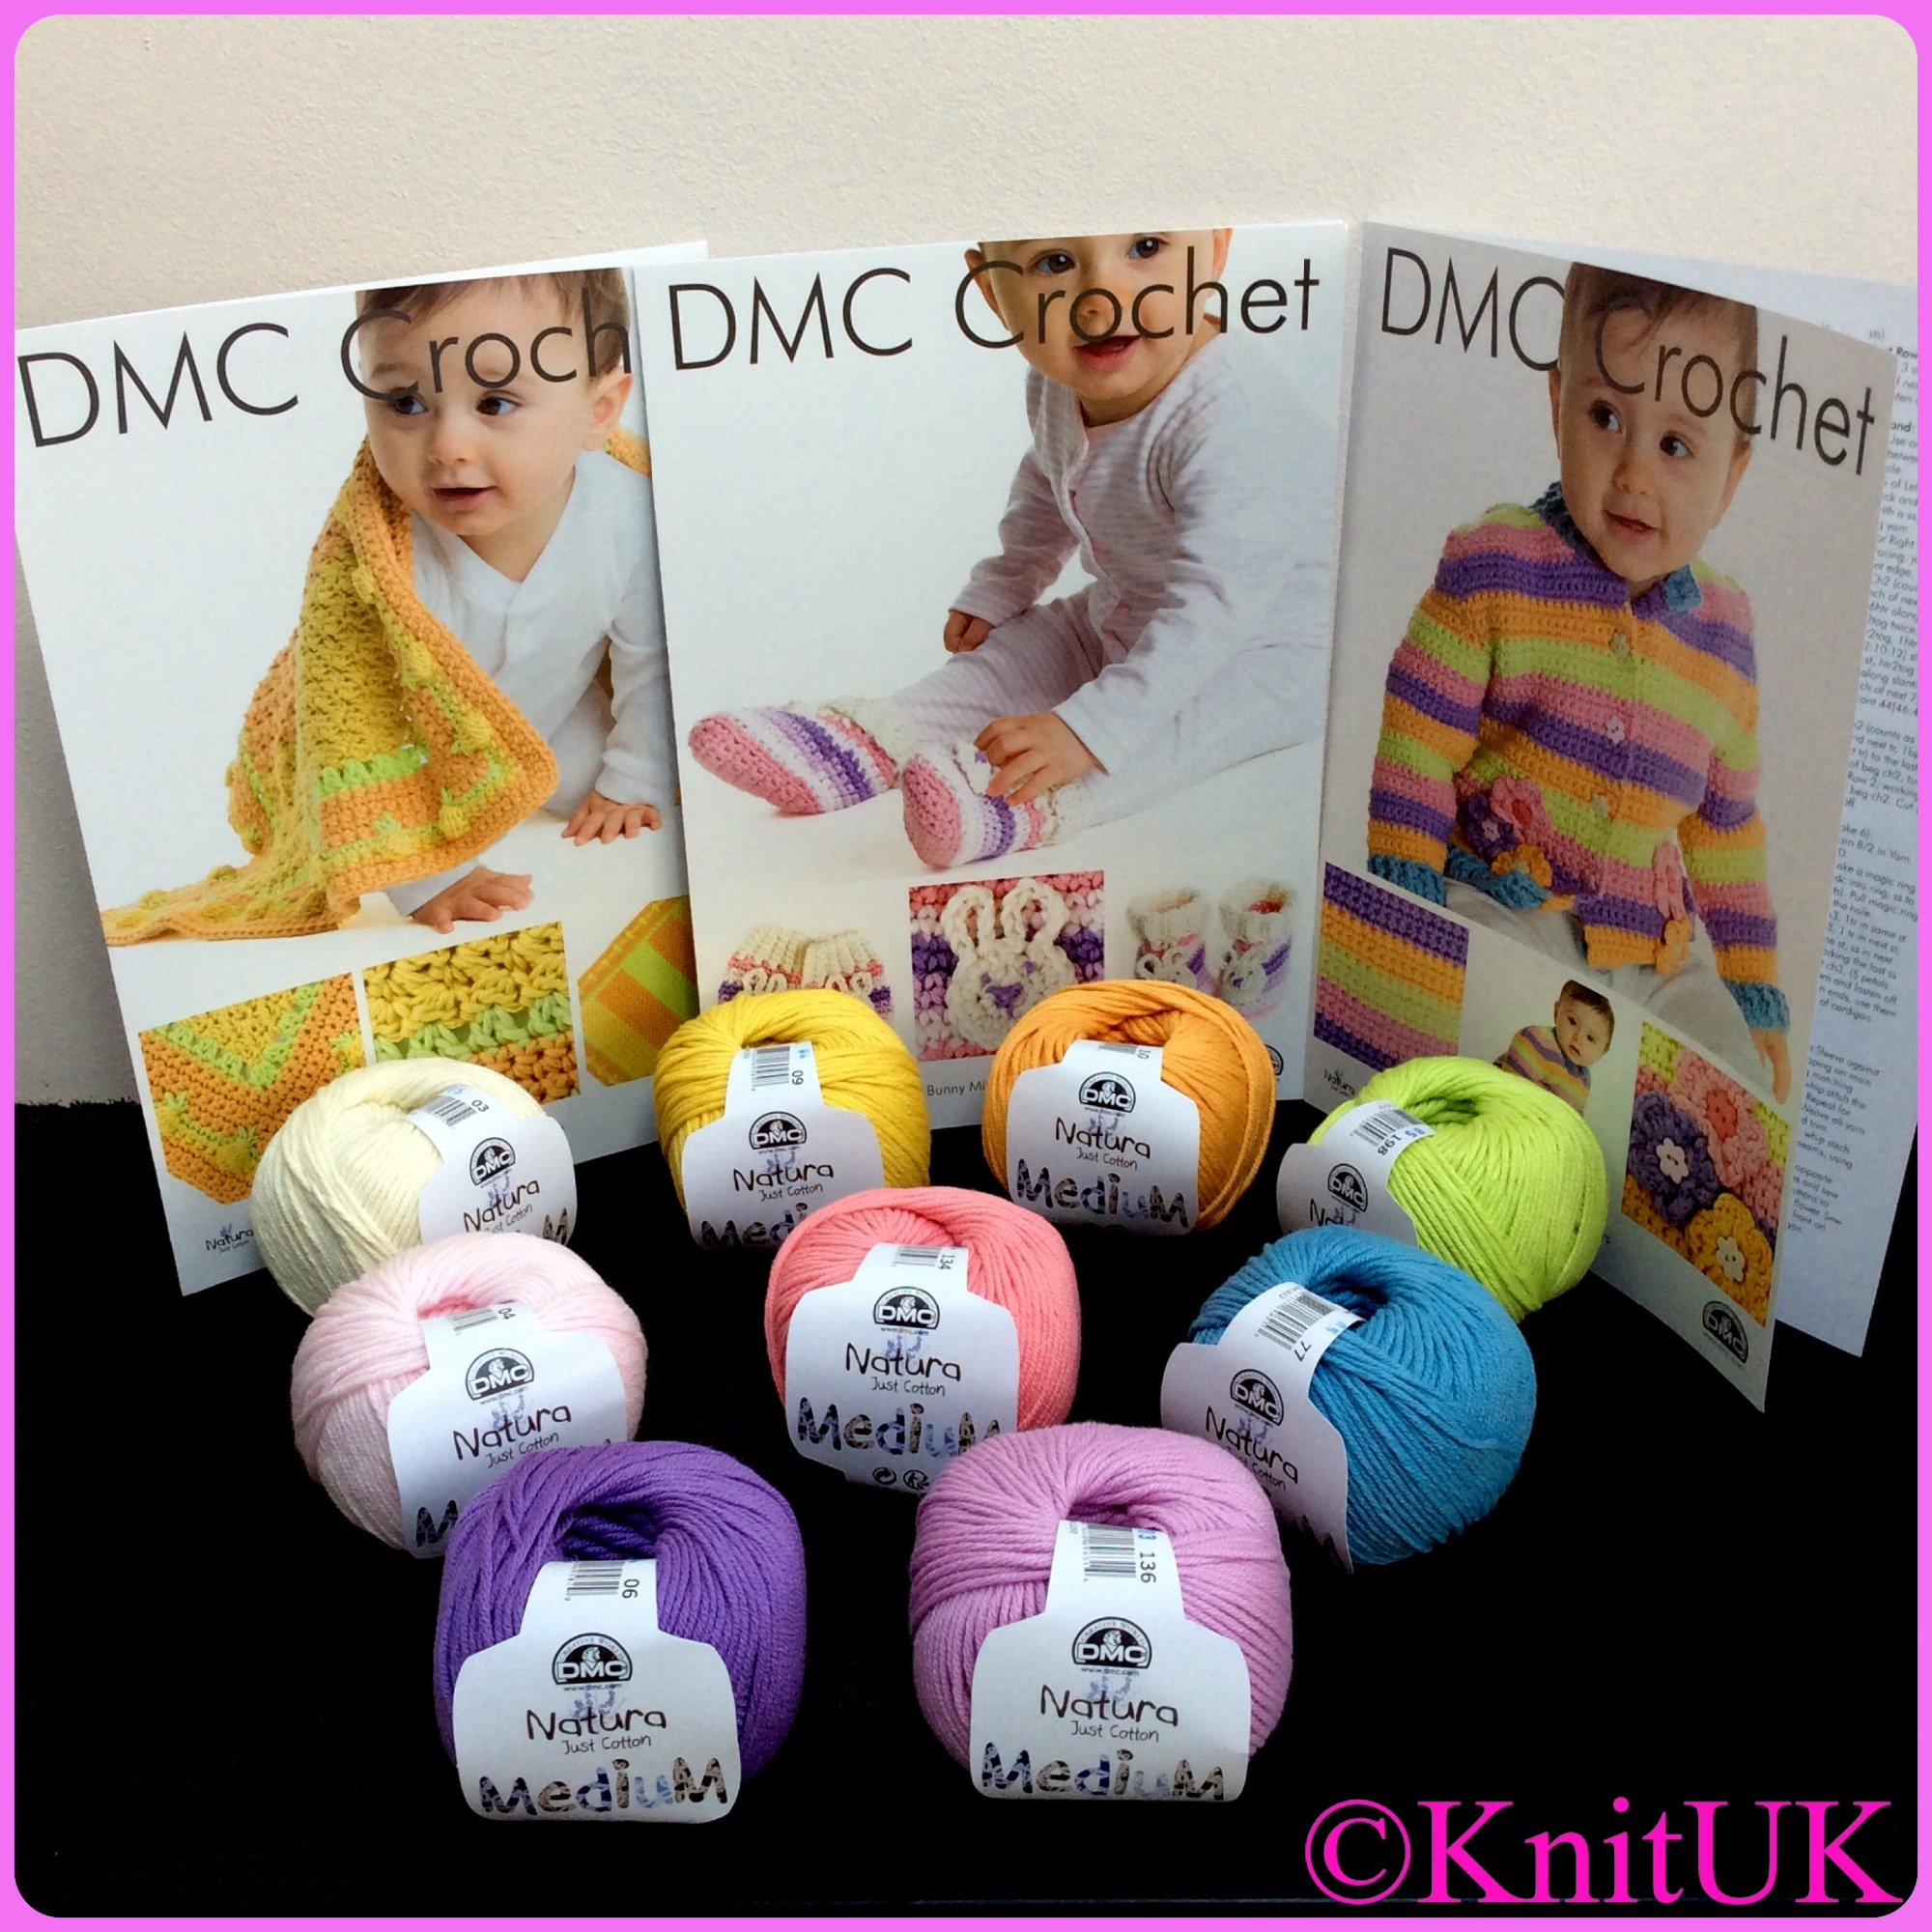 DMC crochet patterns and natura just cotton medium yarn